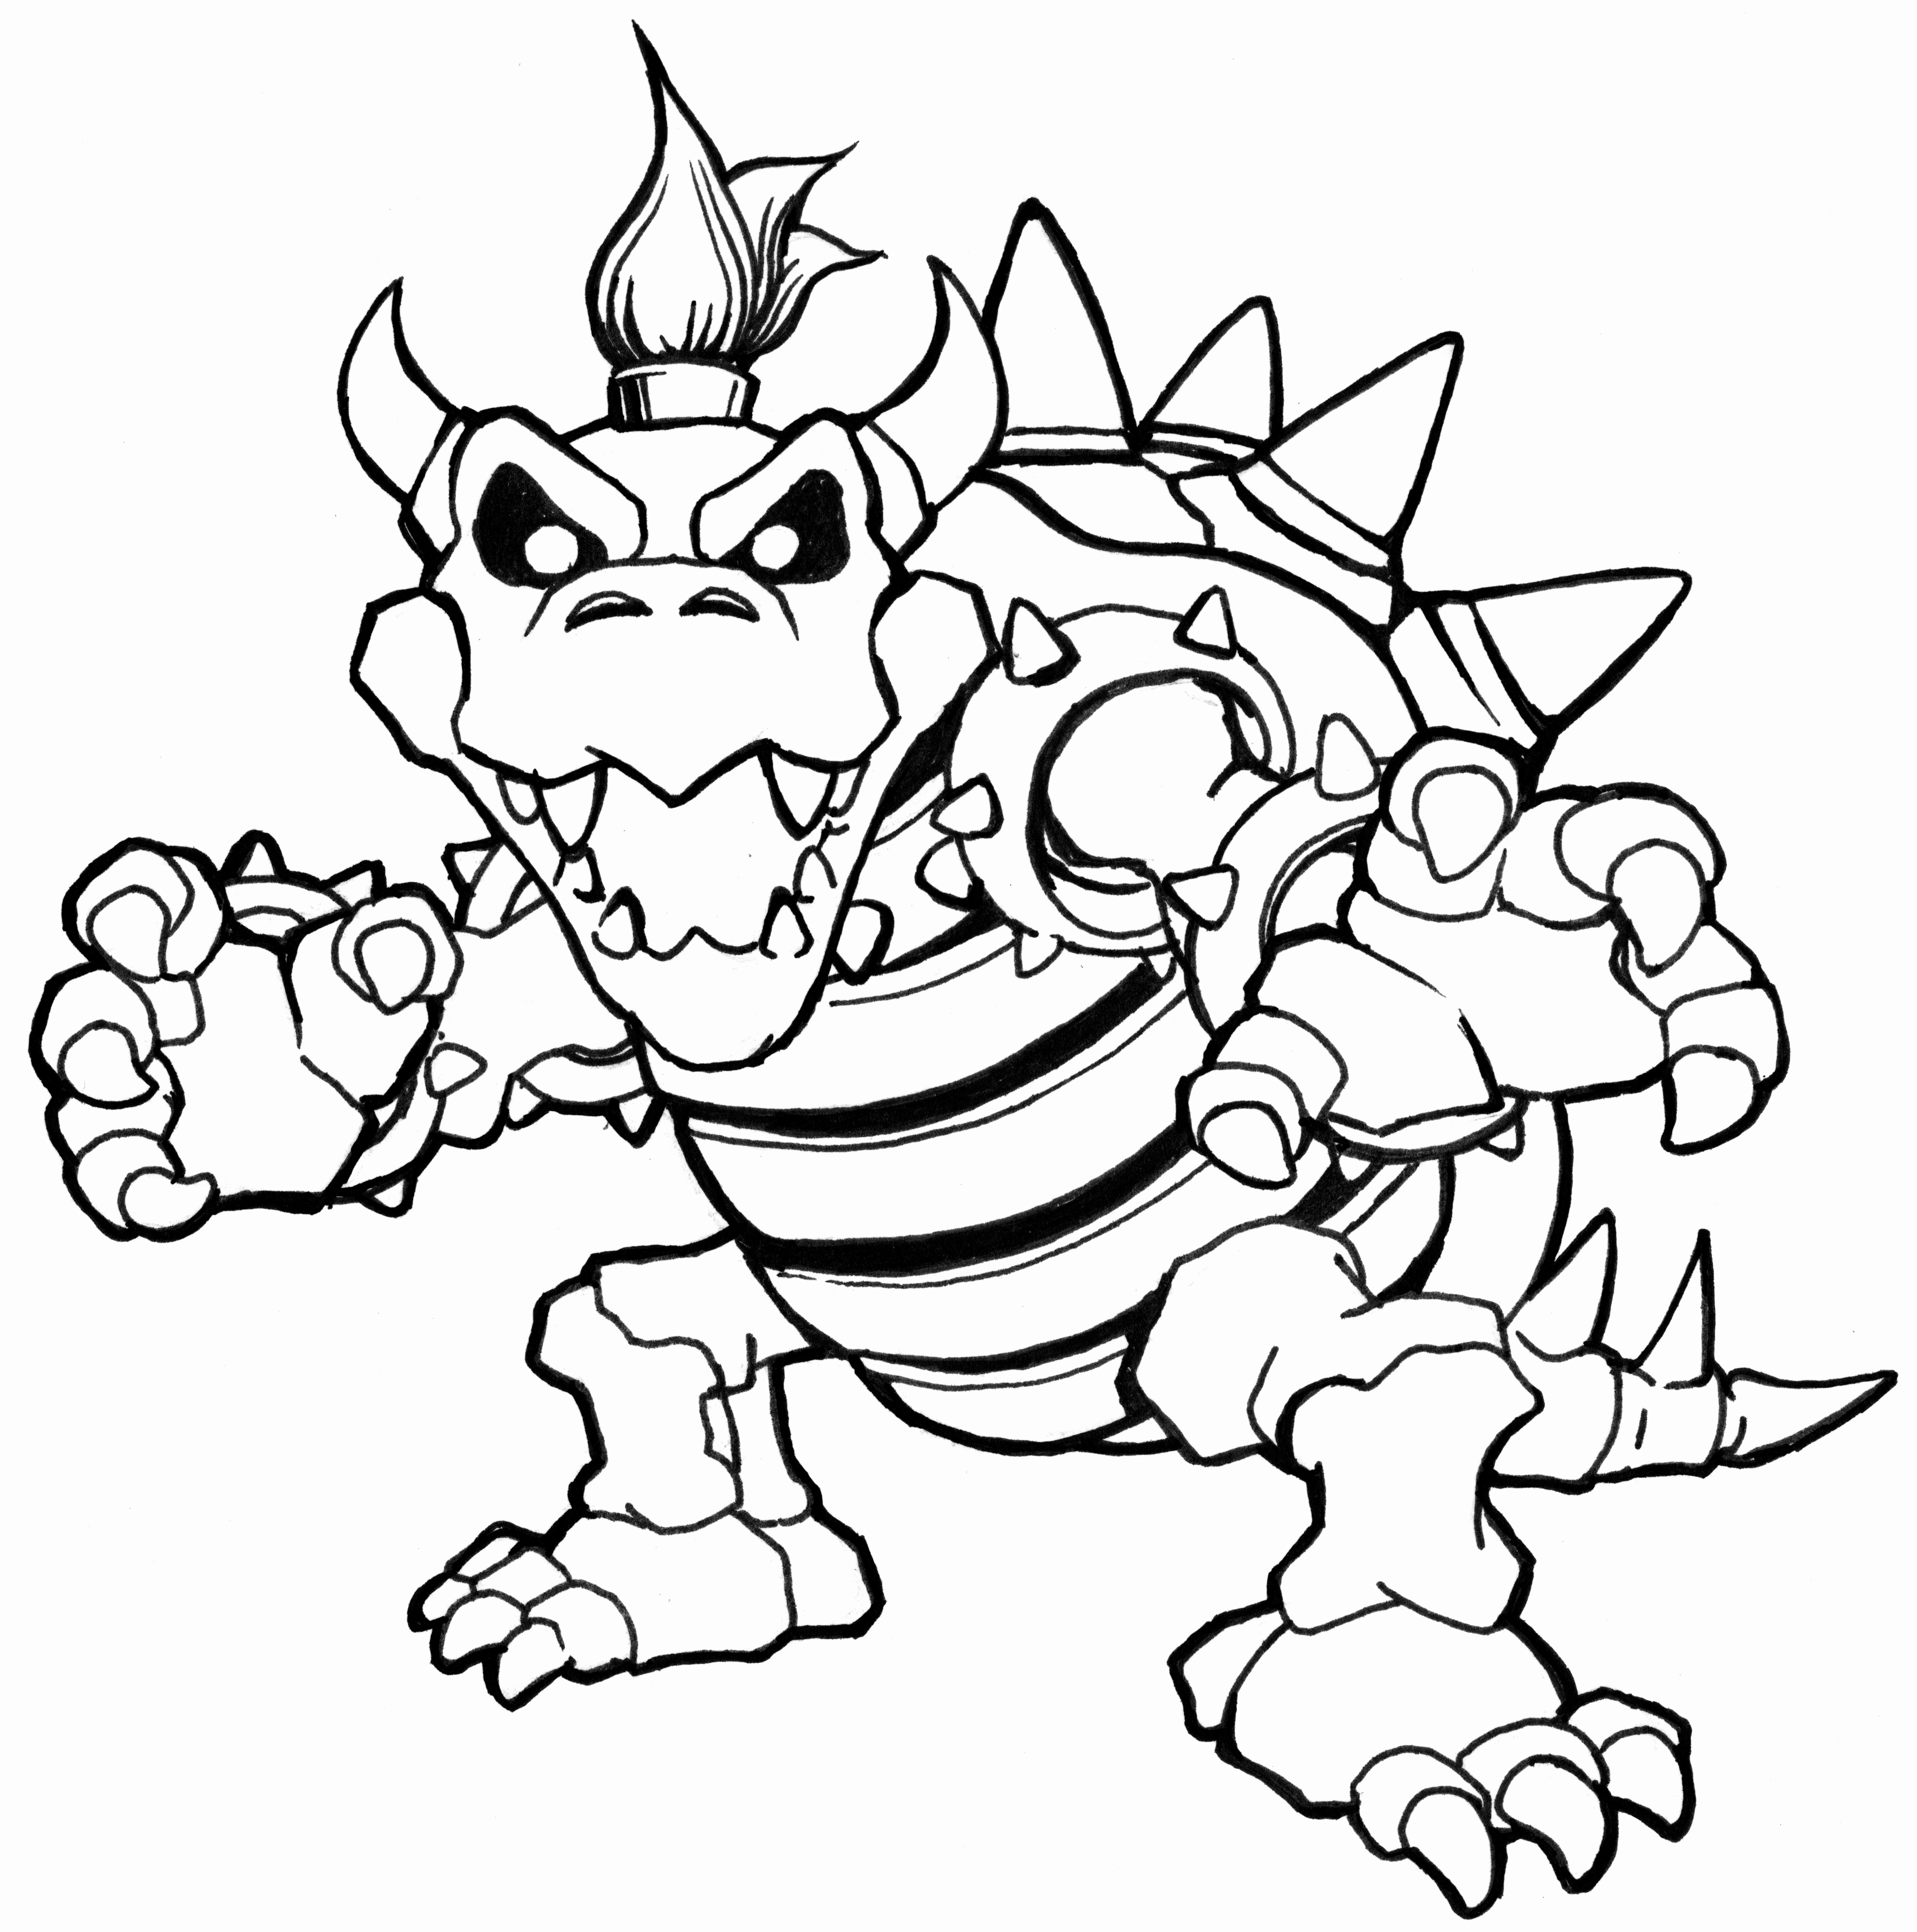 Dry Bones Coloring Pages New Bowser Coloring Bowser Coloring Pages